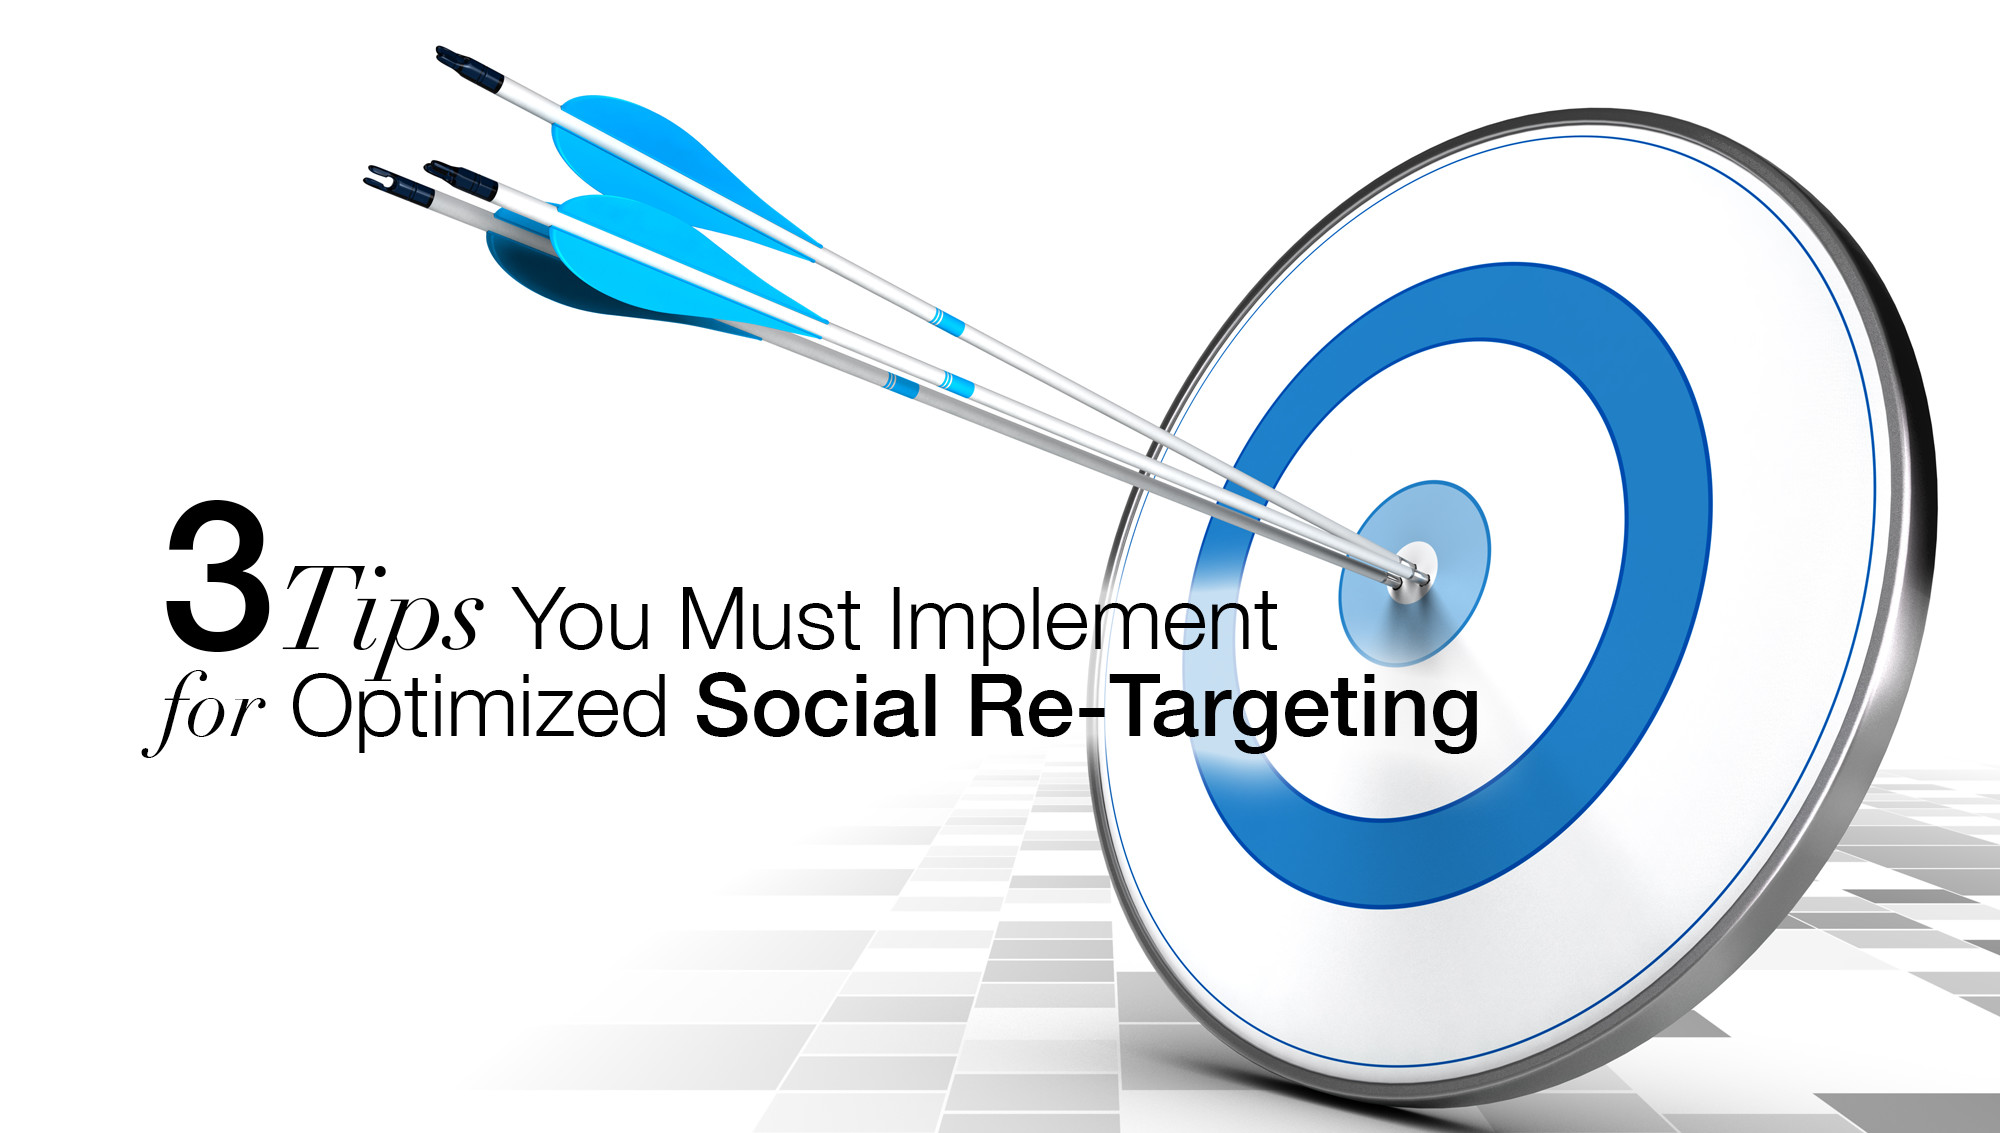 Social Re-Targeting: 3 Tips You Must Implement for Results